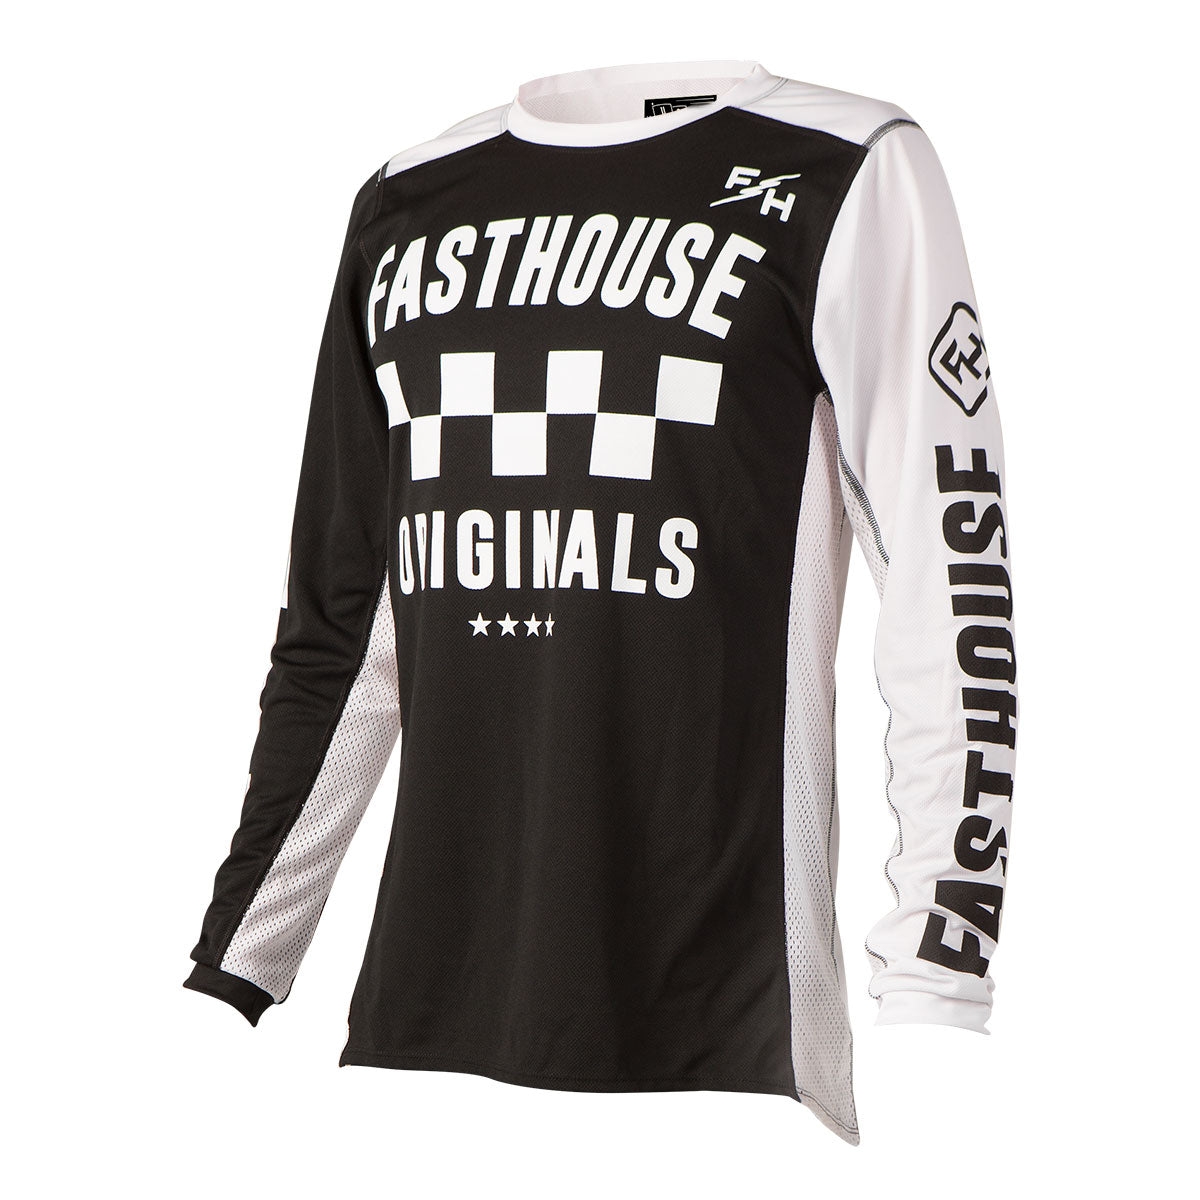 Fasthouse - Checkers OG Jersey - Black